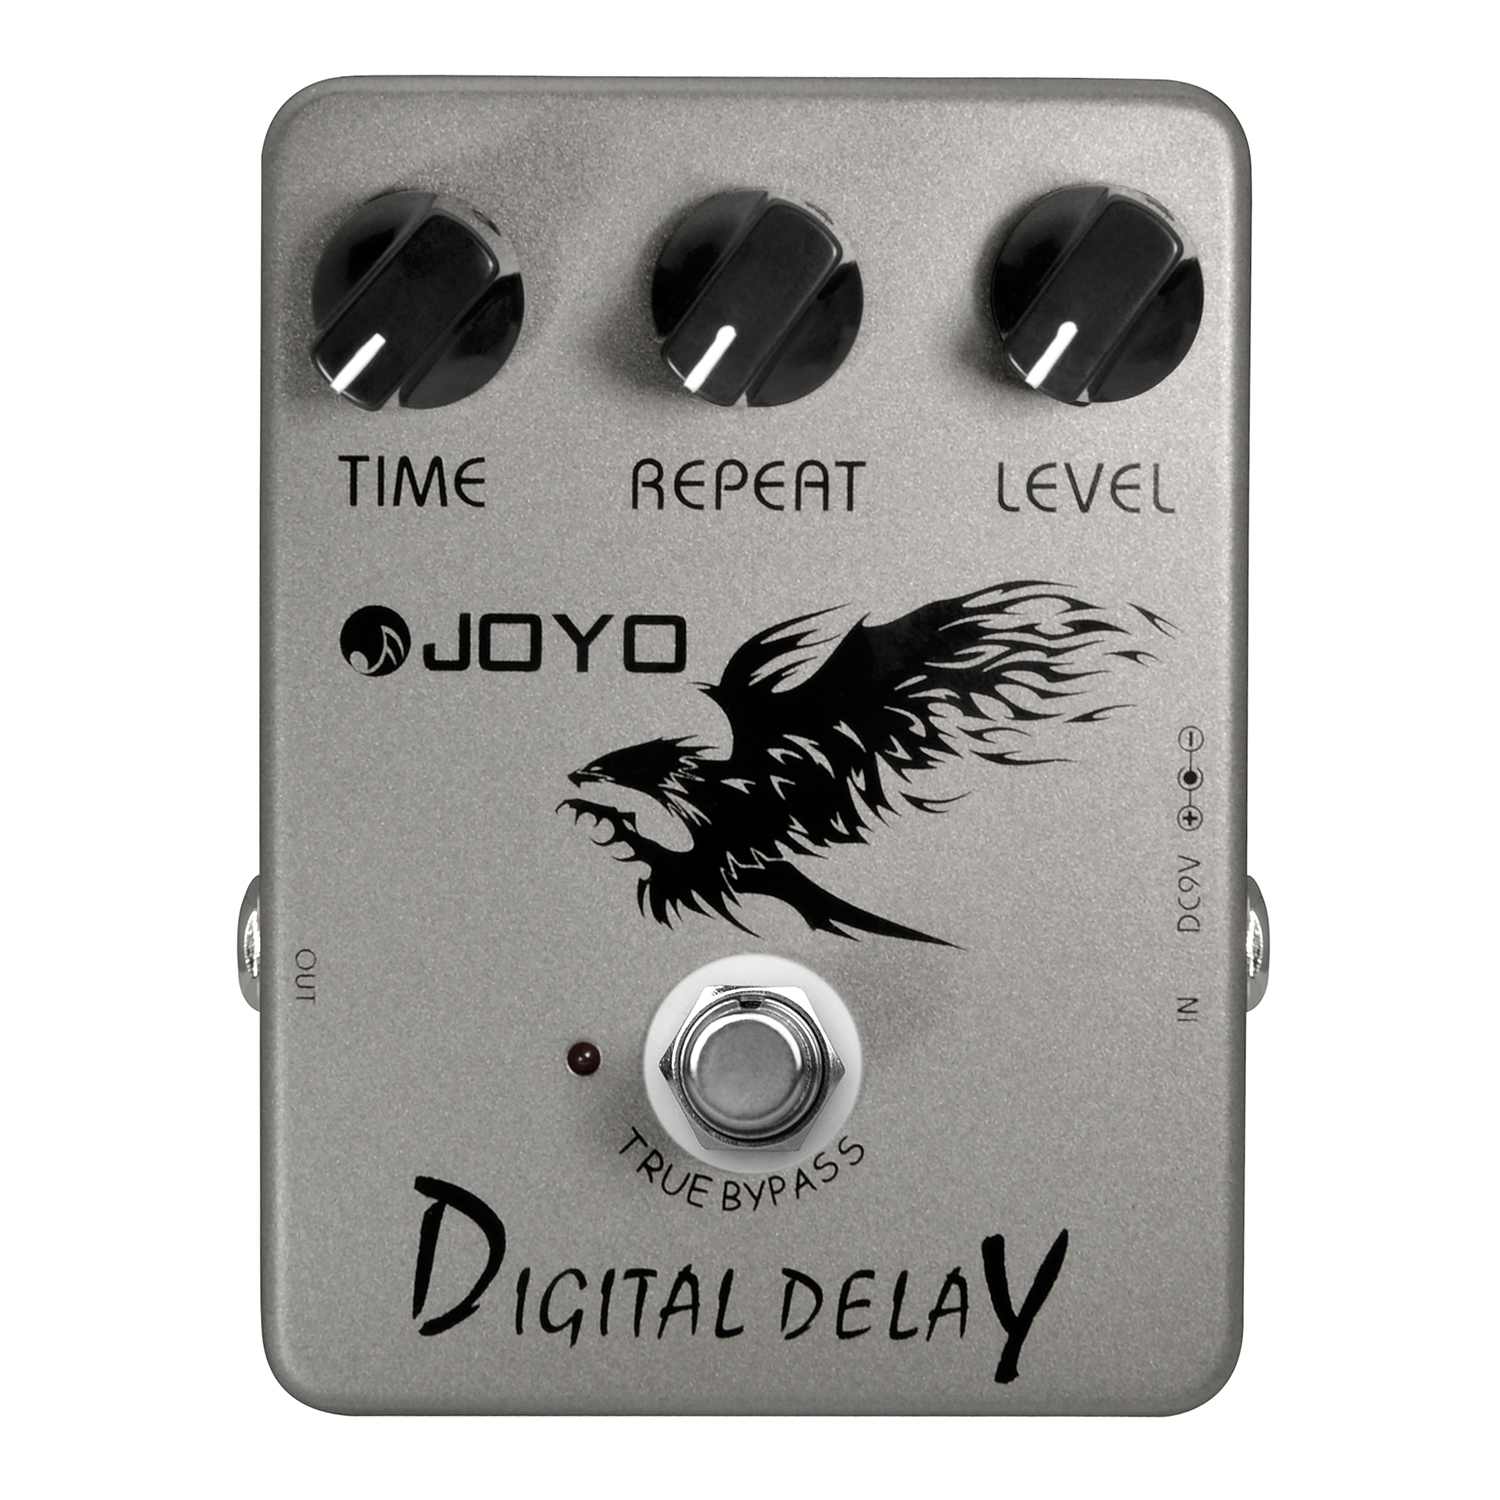 JOYO JF-08 Digital Delay Electric Guitar Effect Pedal True Bypass JF 08 jf